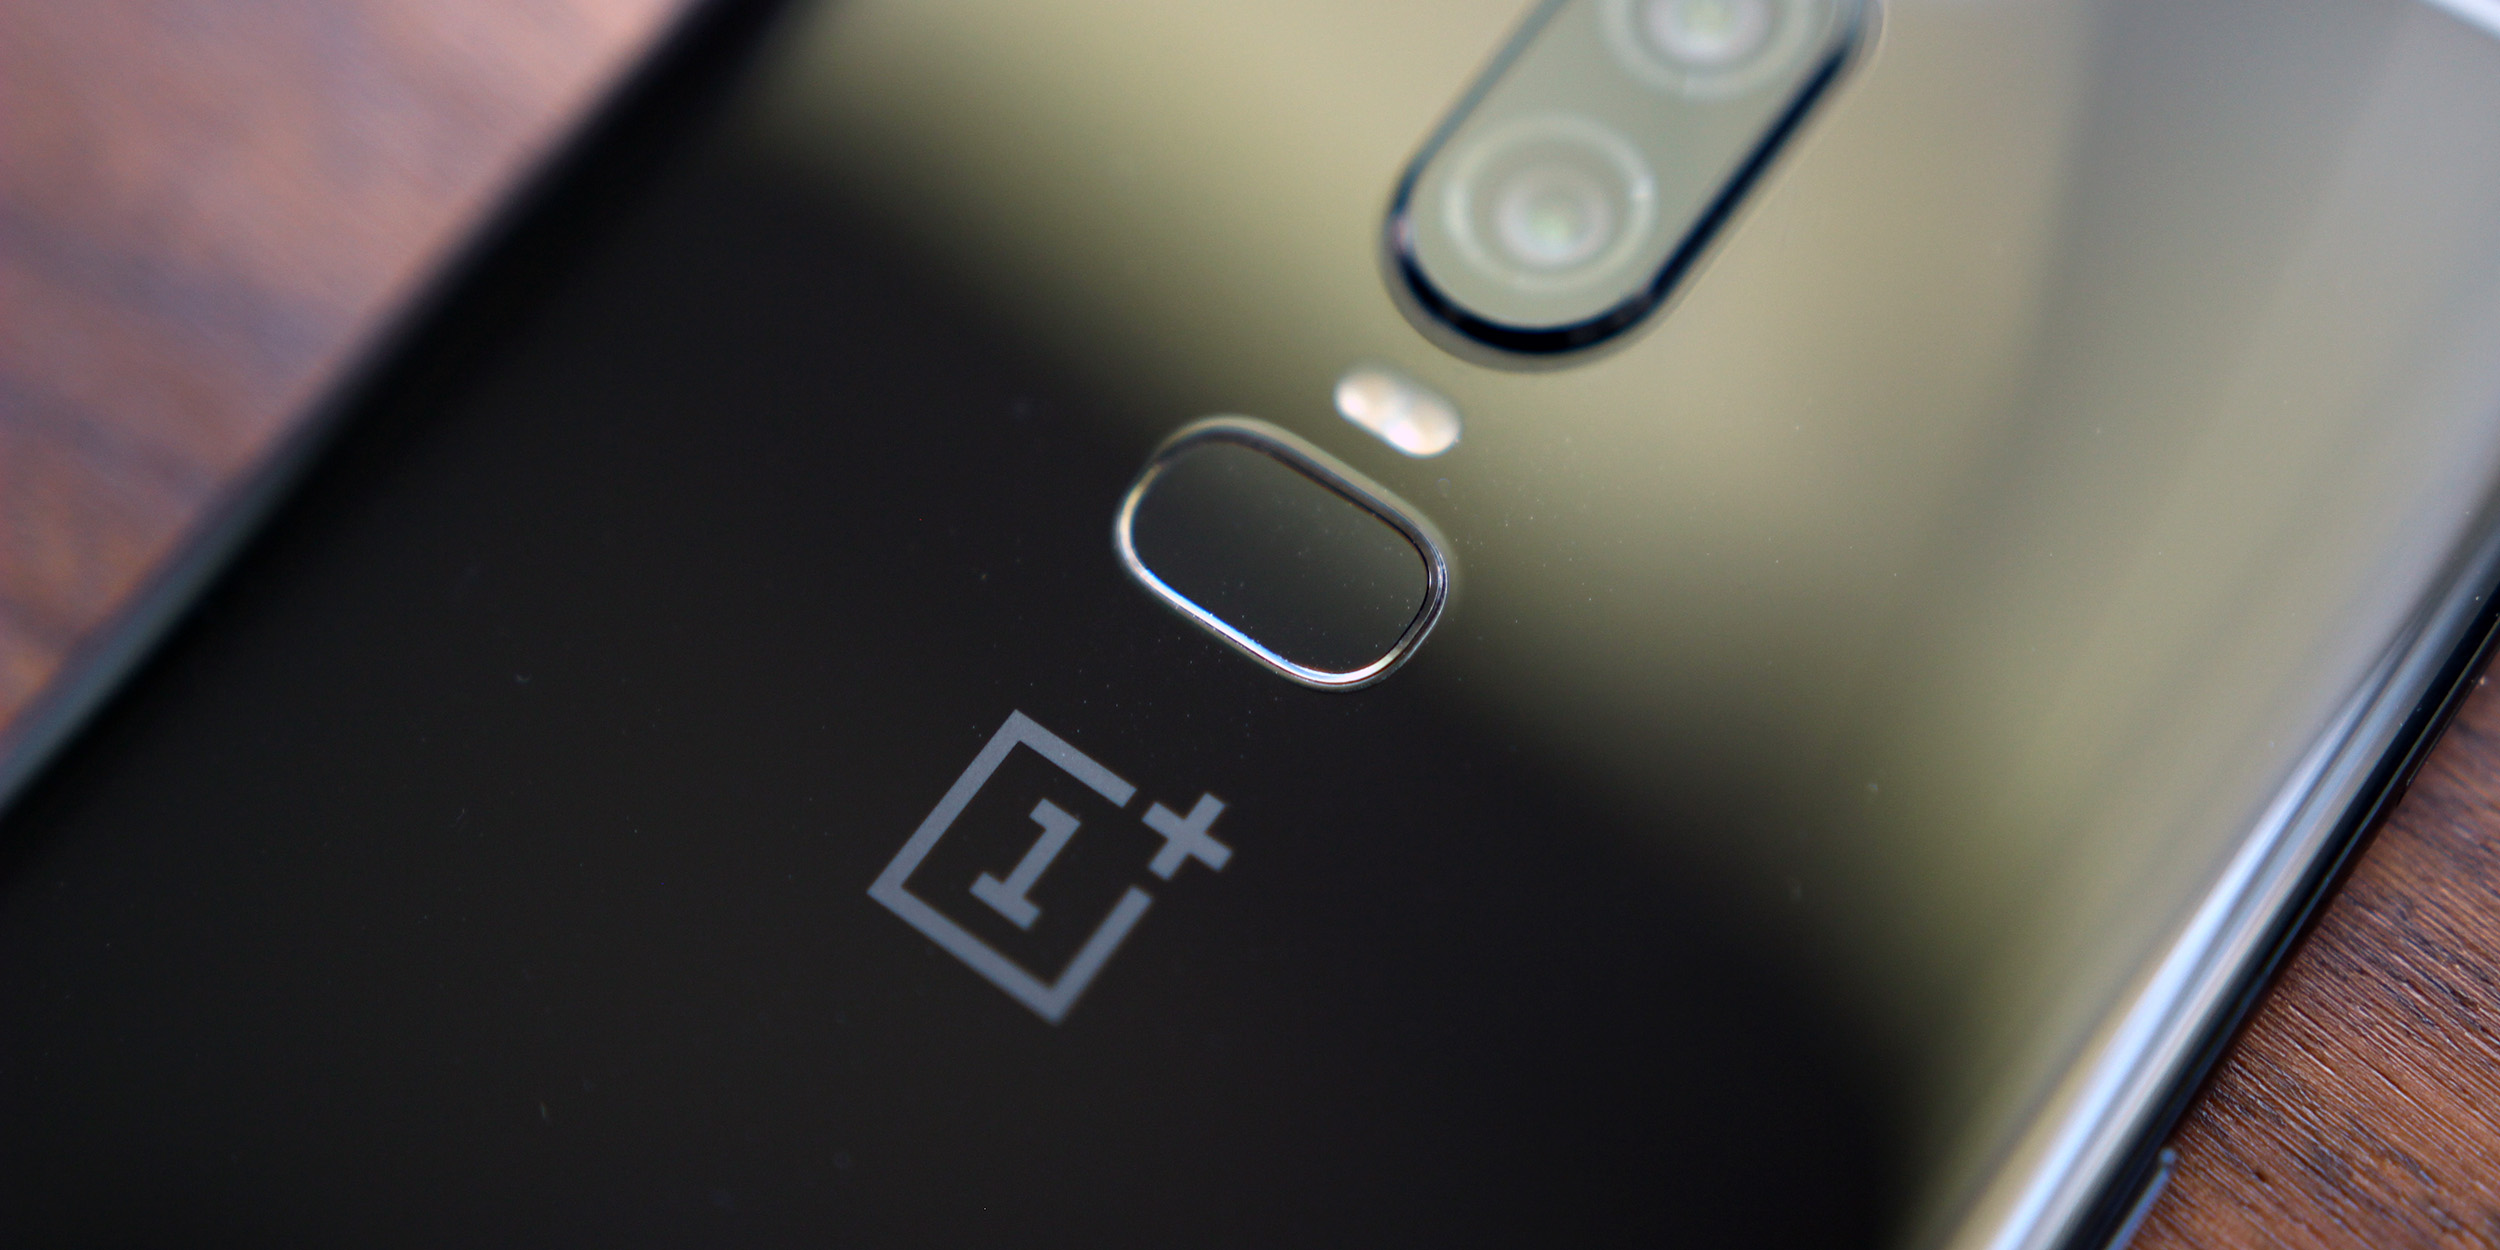 oneplus 6 5 5t add google lens camera shortcut photo quality improvements in latest updates